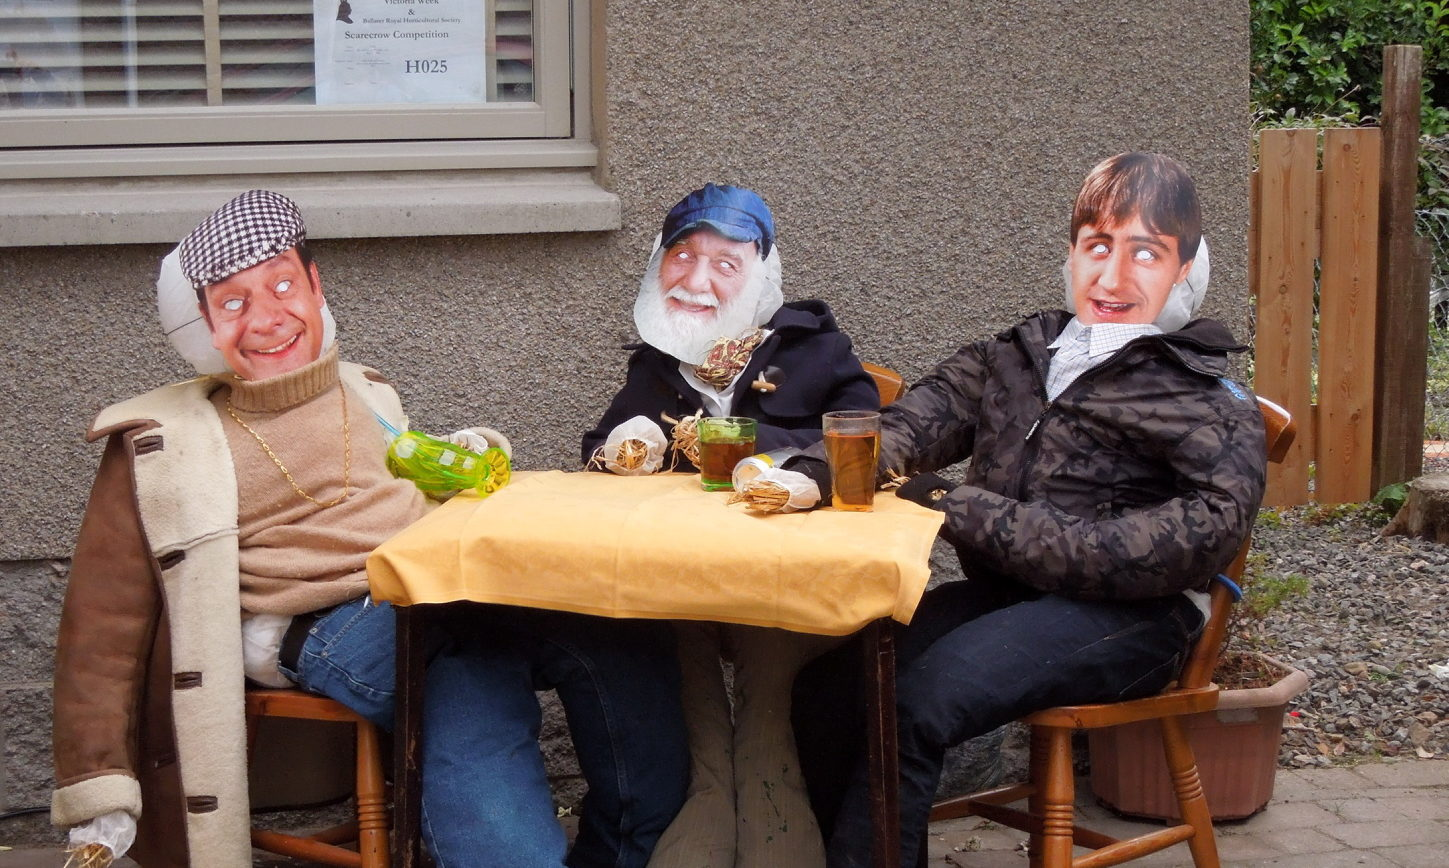 Only Fools and Horses entries in 2015